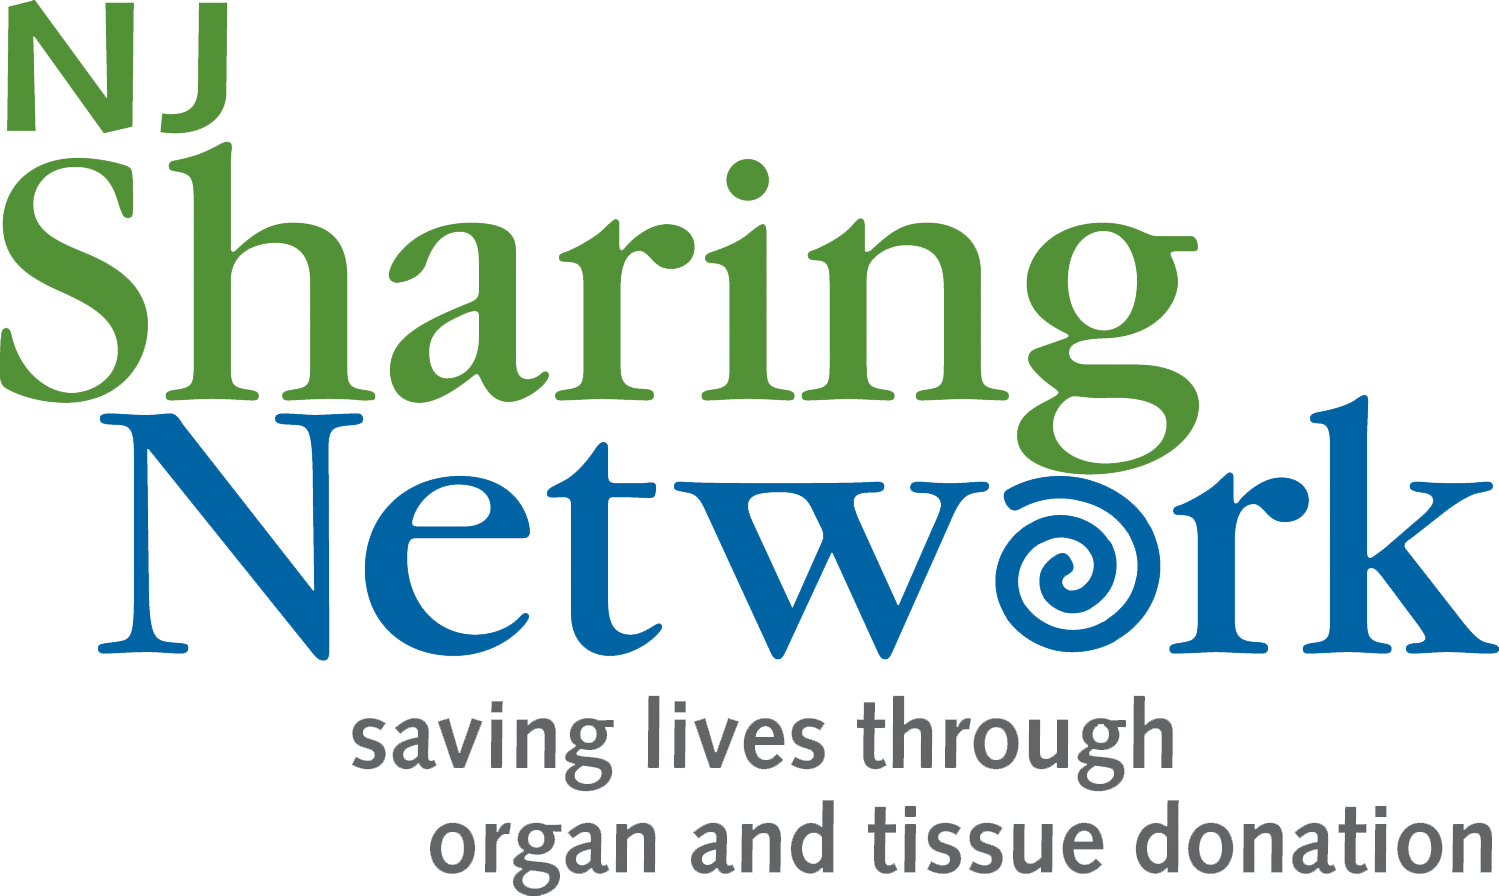 NJ Sharing Network is the non-profit organization responsible for the recovery and placement of donated organs and tissue for those in need of a life-saving transplant. Over 4,000 New Jersey residents are currently awaiting transplantation. We are also part of the national recovery system, which is in place for the more than 120,000 people on waiting lists.